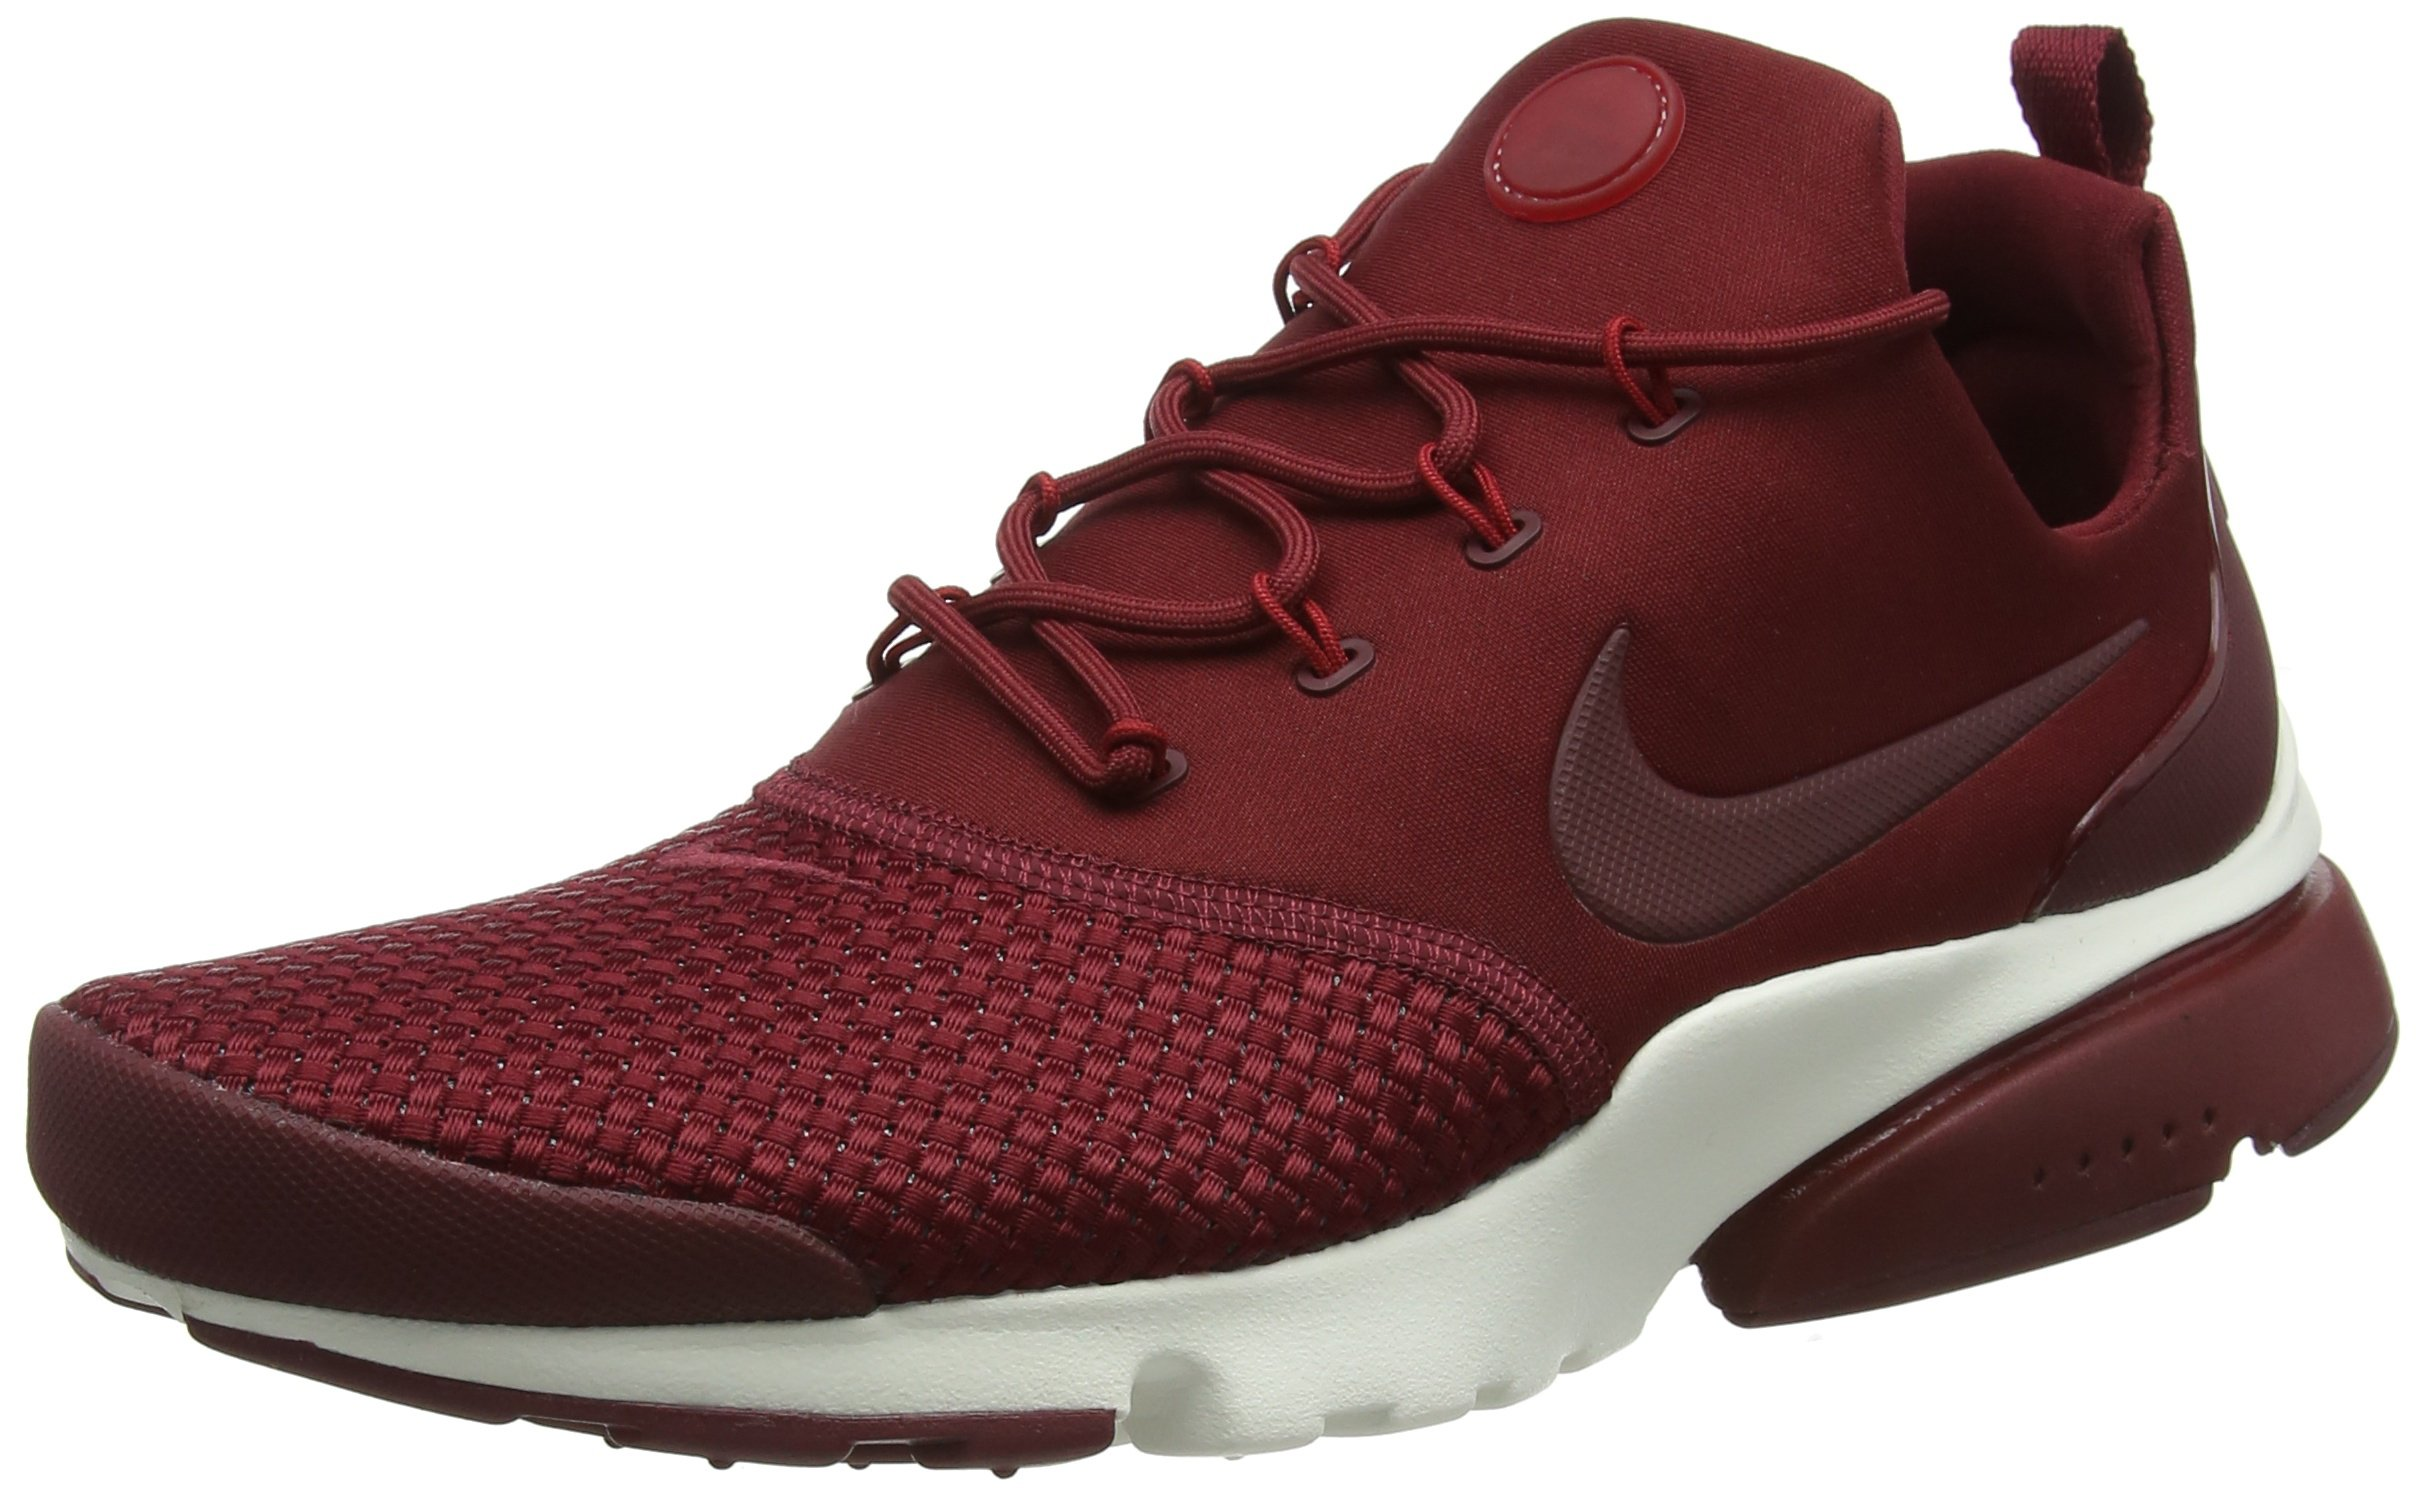 premium selection a303e 7945e Galleon - NIKE Presto Fly SE Mens Running Trainers 908020 Sneakers Shoes  (UK 11 US 12 EU 46, Team Red Sail 603)